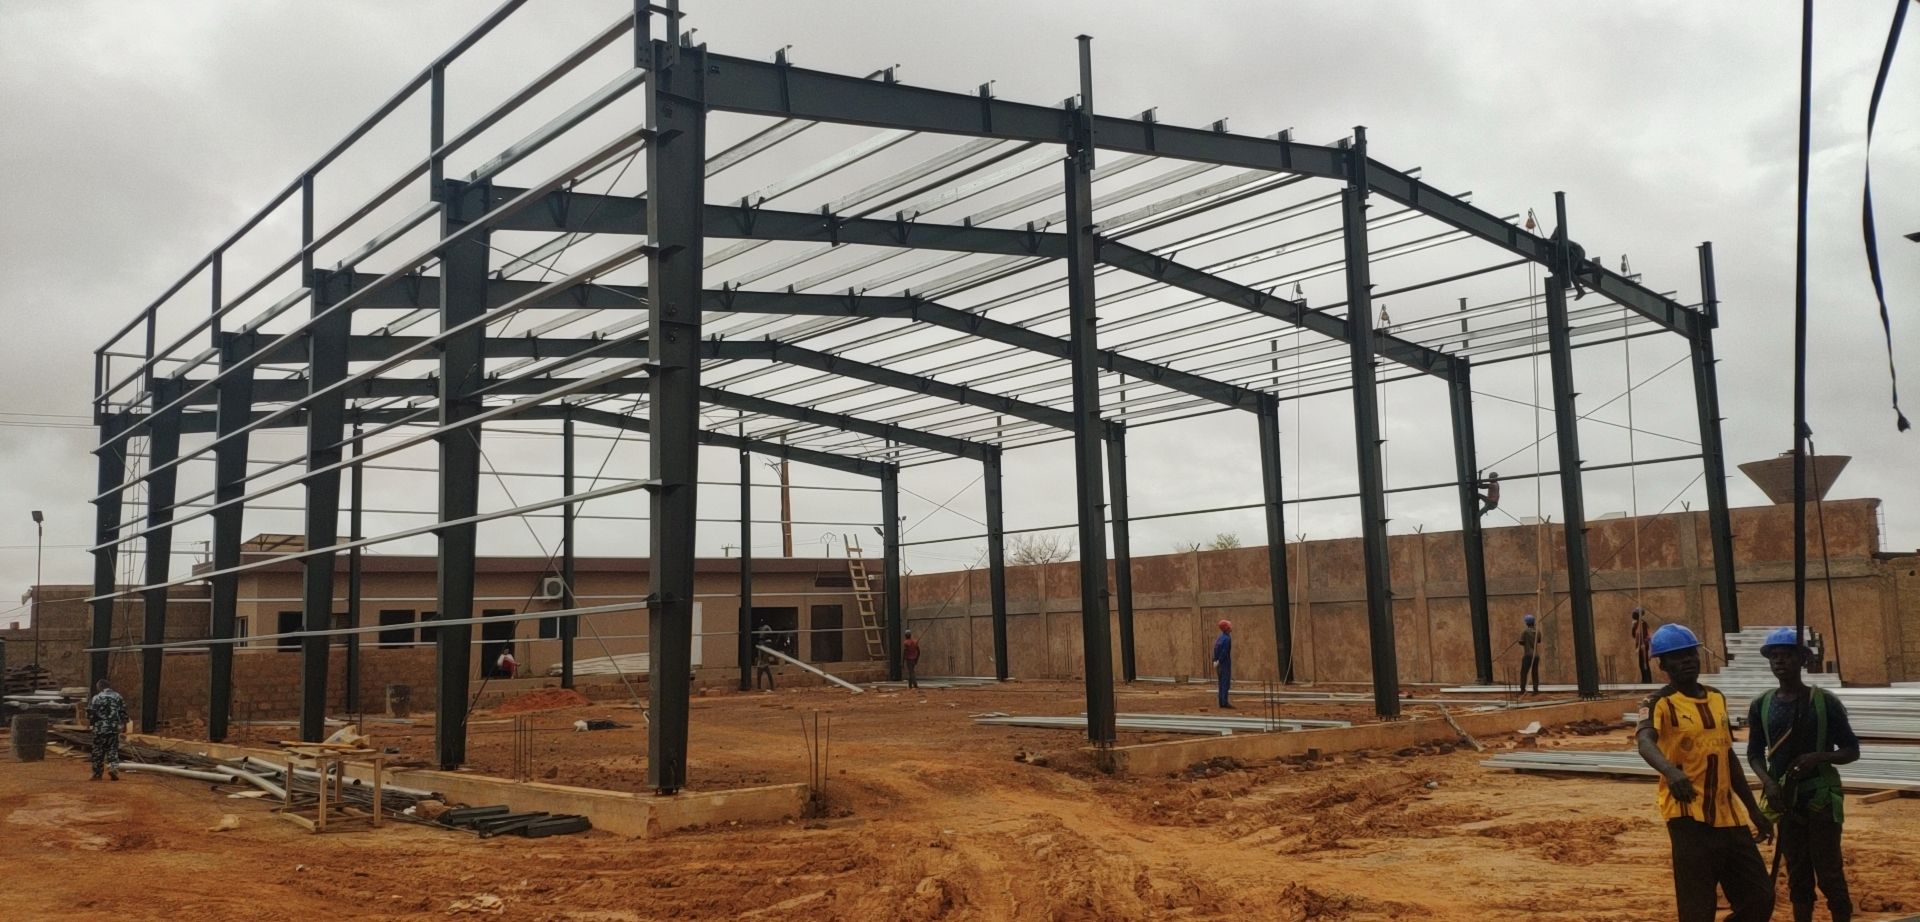 Steel Warehouse in Niger